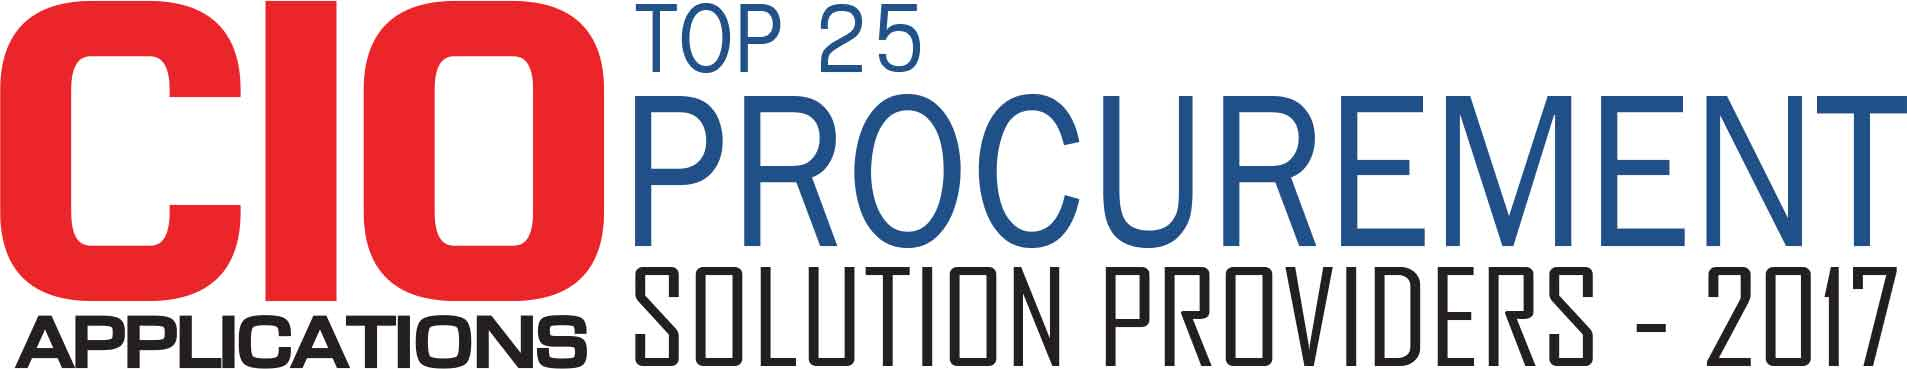 Top 25 Companies Providing Procurement Solution - 2017